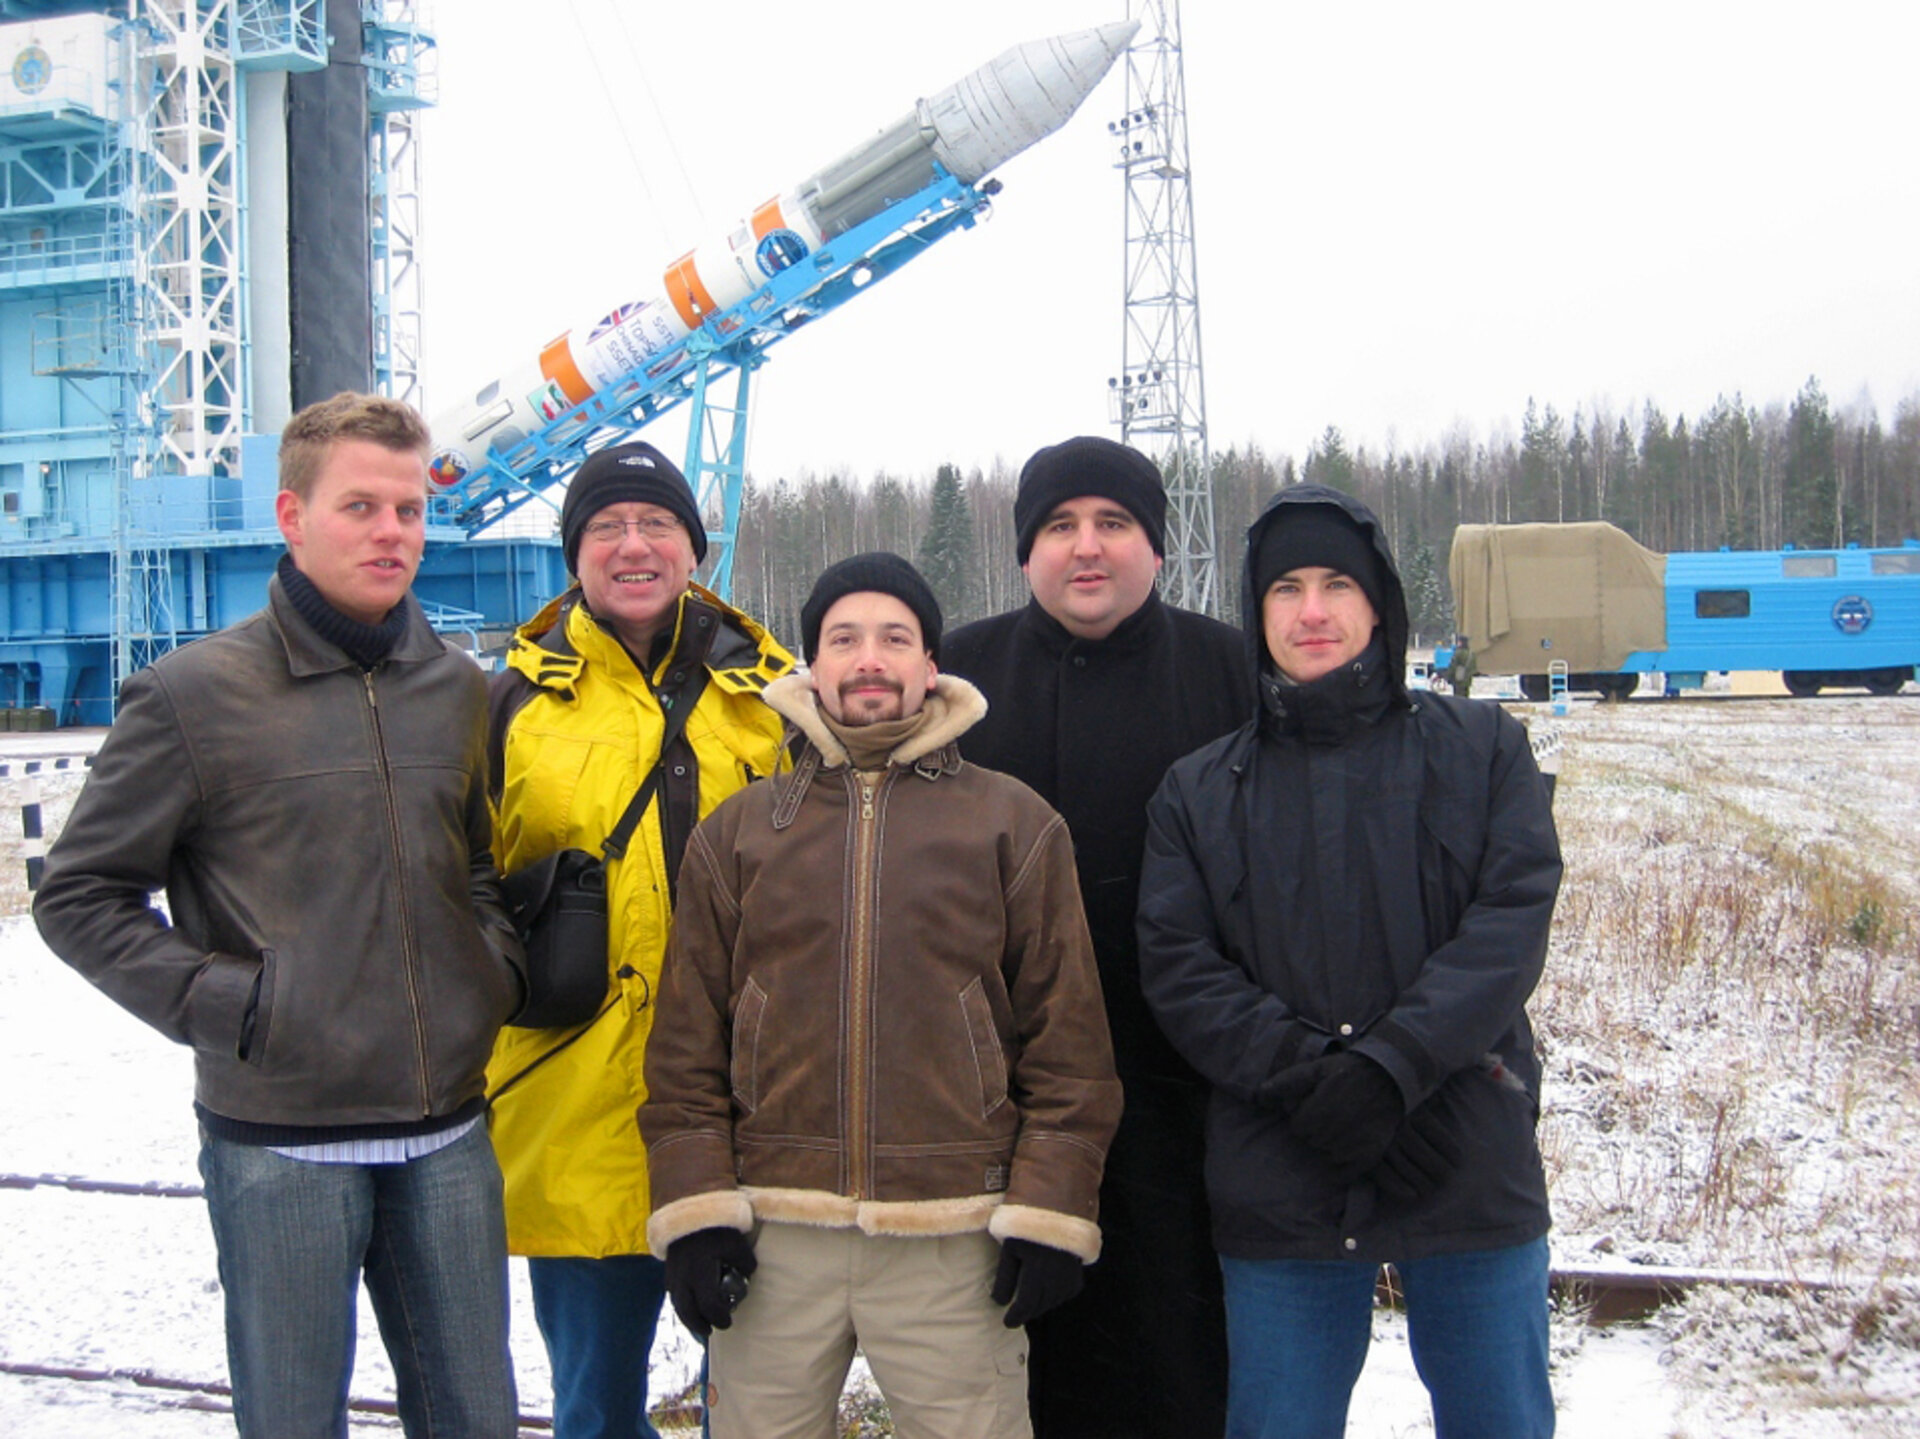 The team during the rocket erection